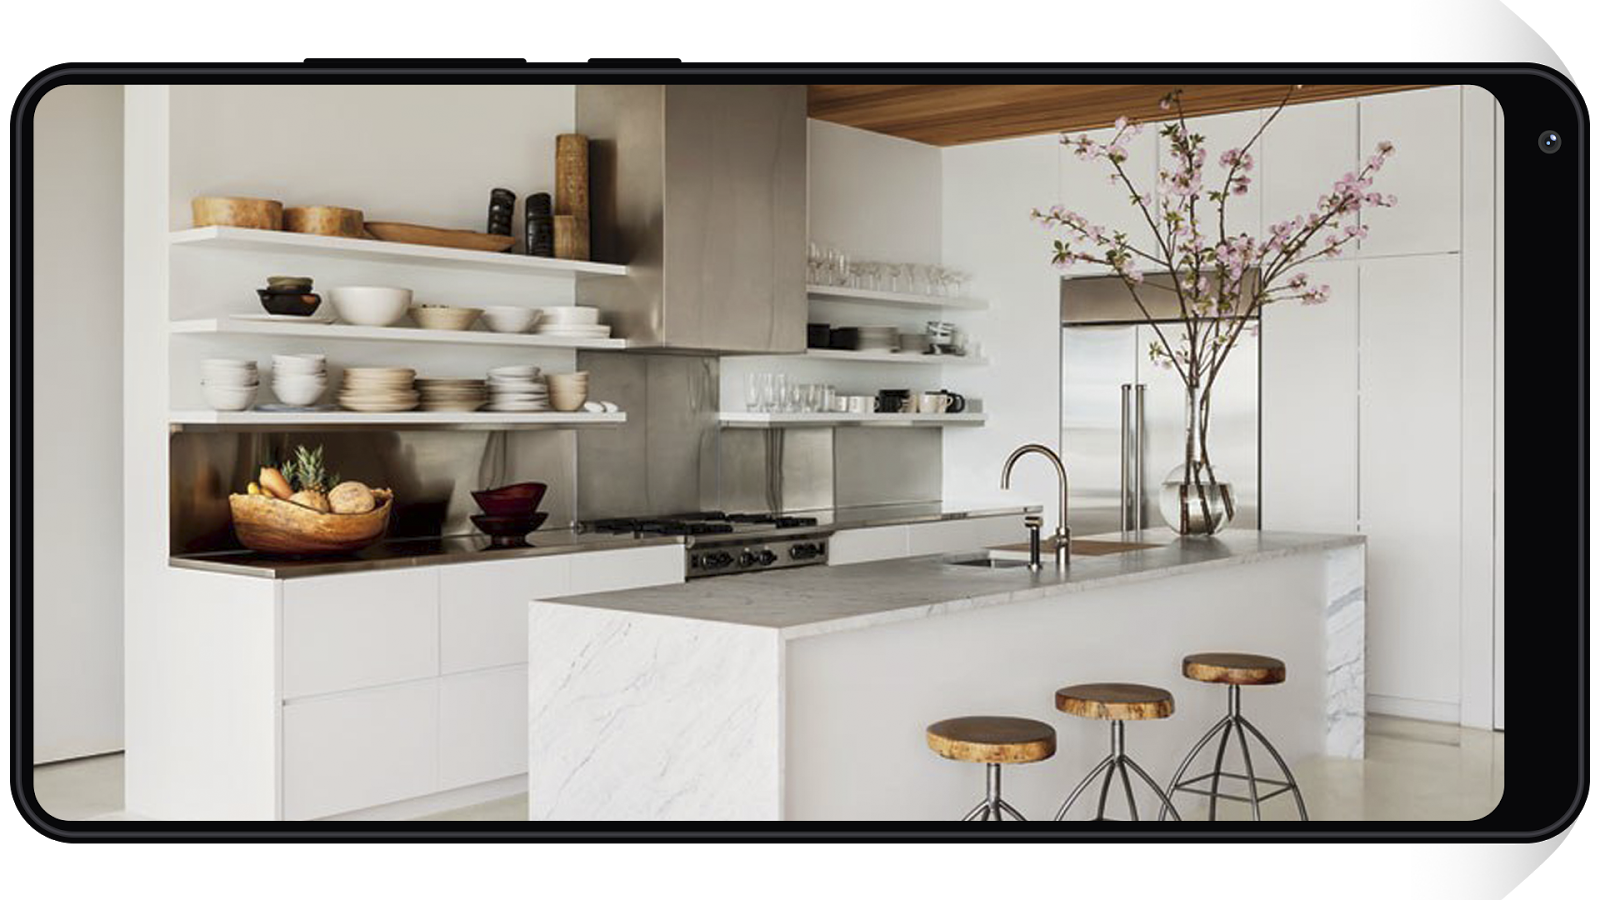 Latest kitchens designs 2018 android apps on google play for Kitchen ideas app